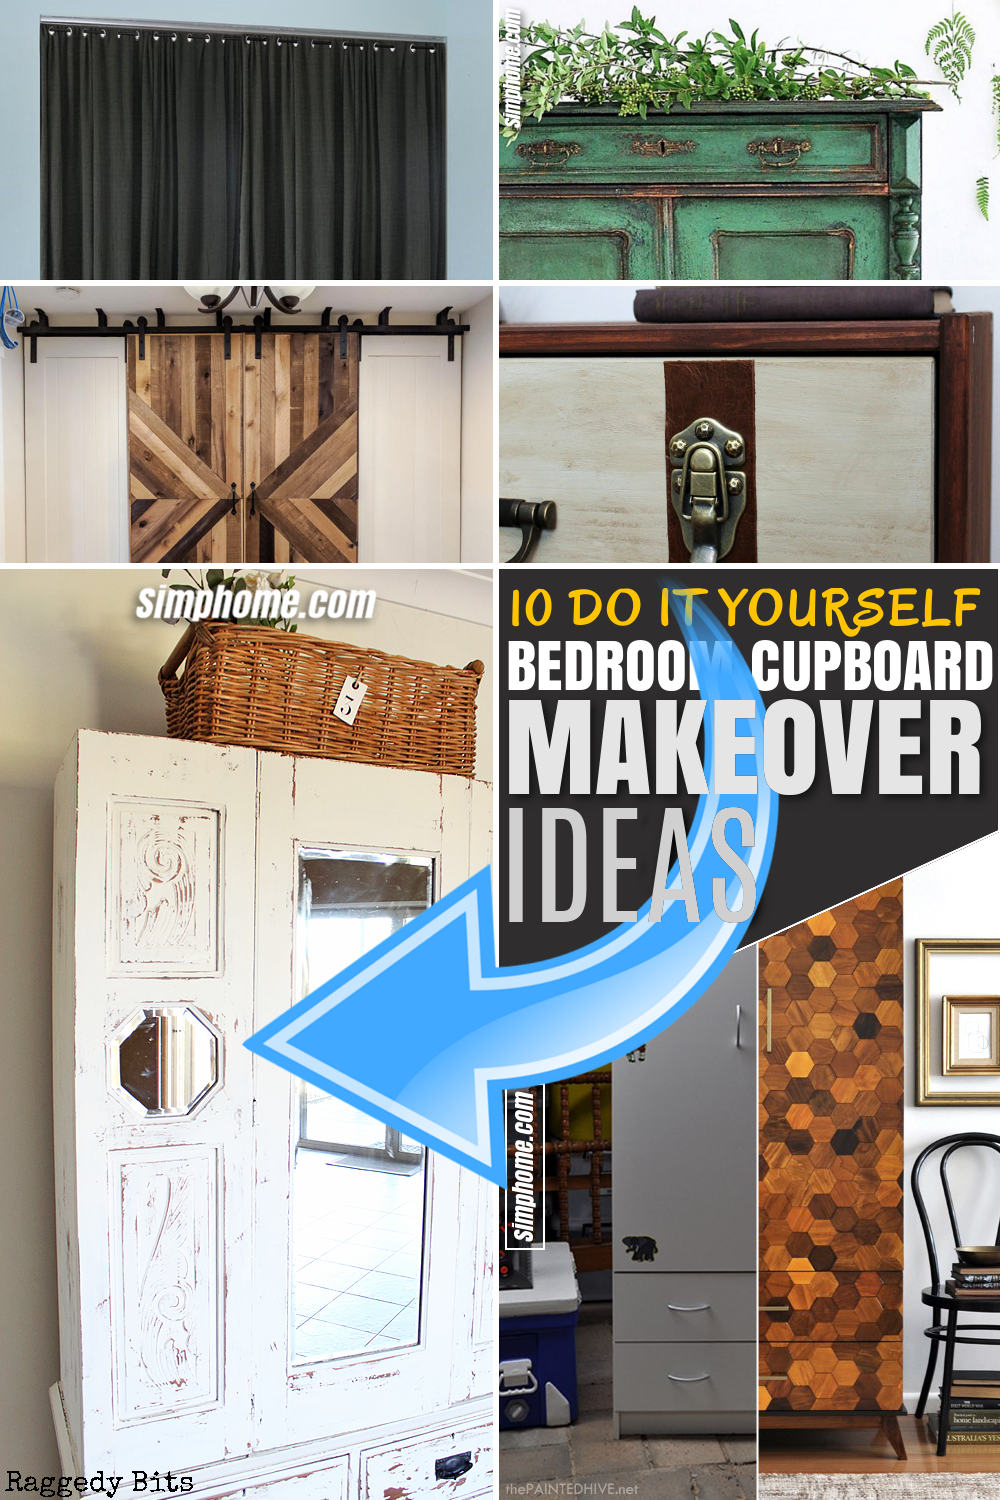 SIMPHOME.COM 10 bedroom cupboard makeover ideas Featured Pinterest